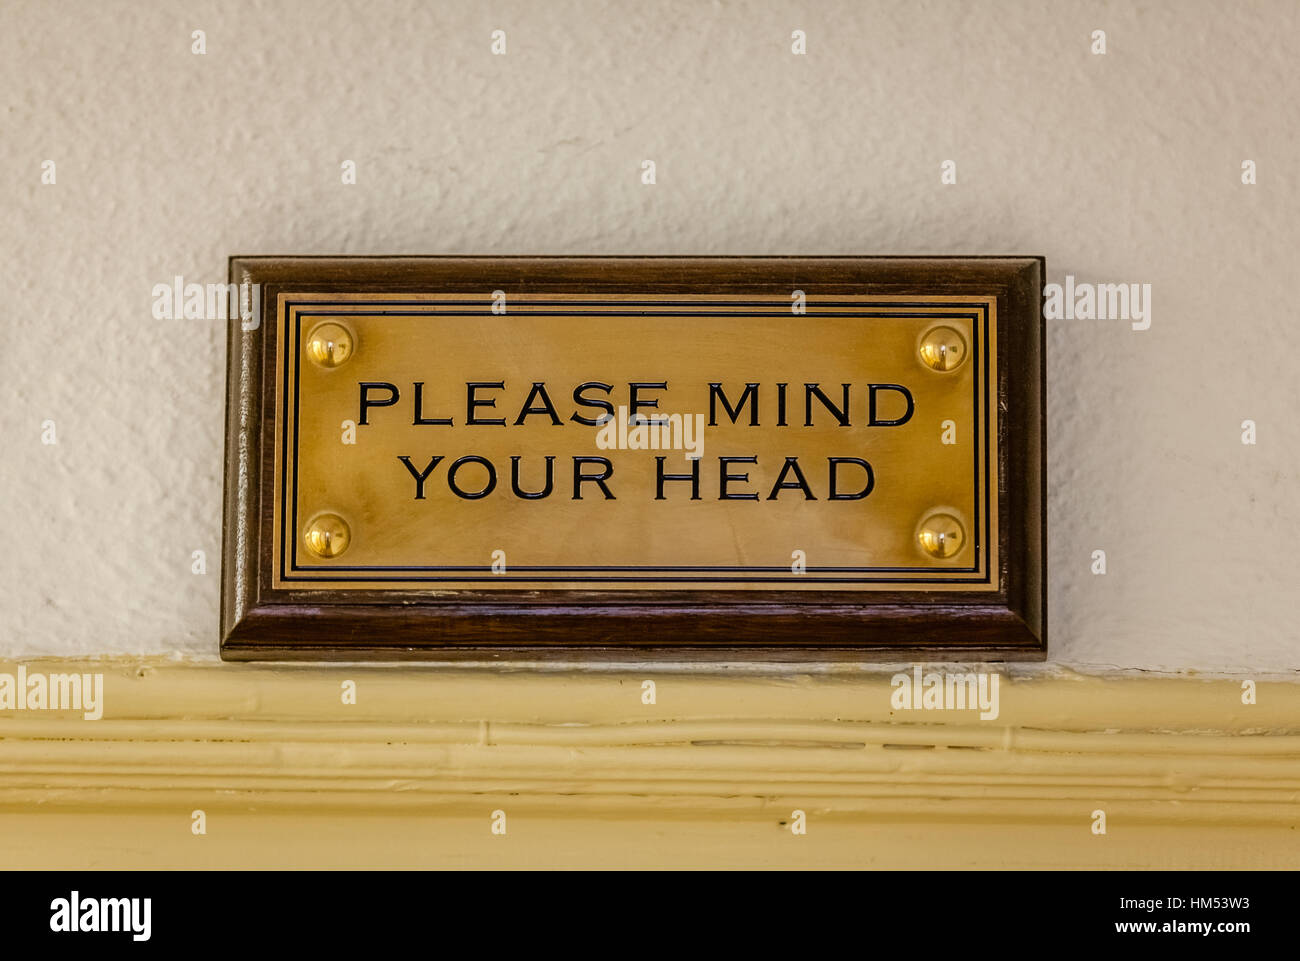 Mind your head plaque in a building with small doors - Stock Image